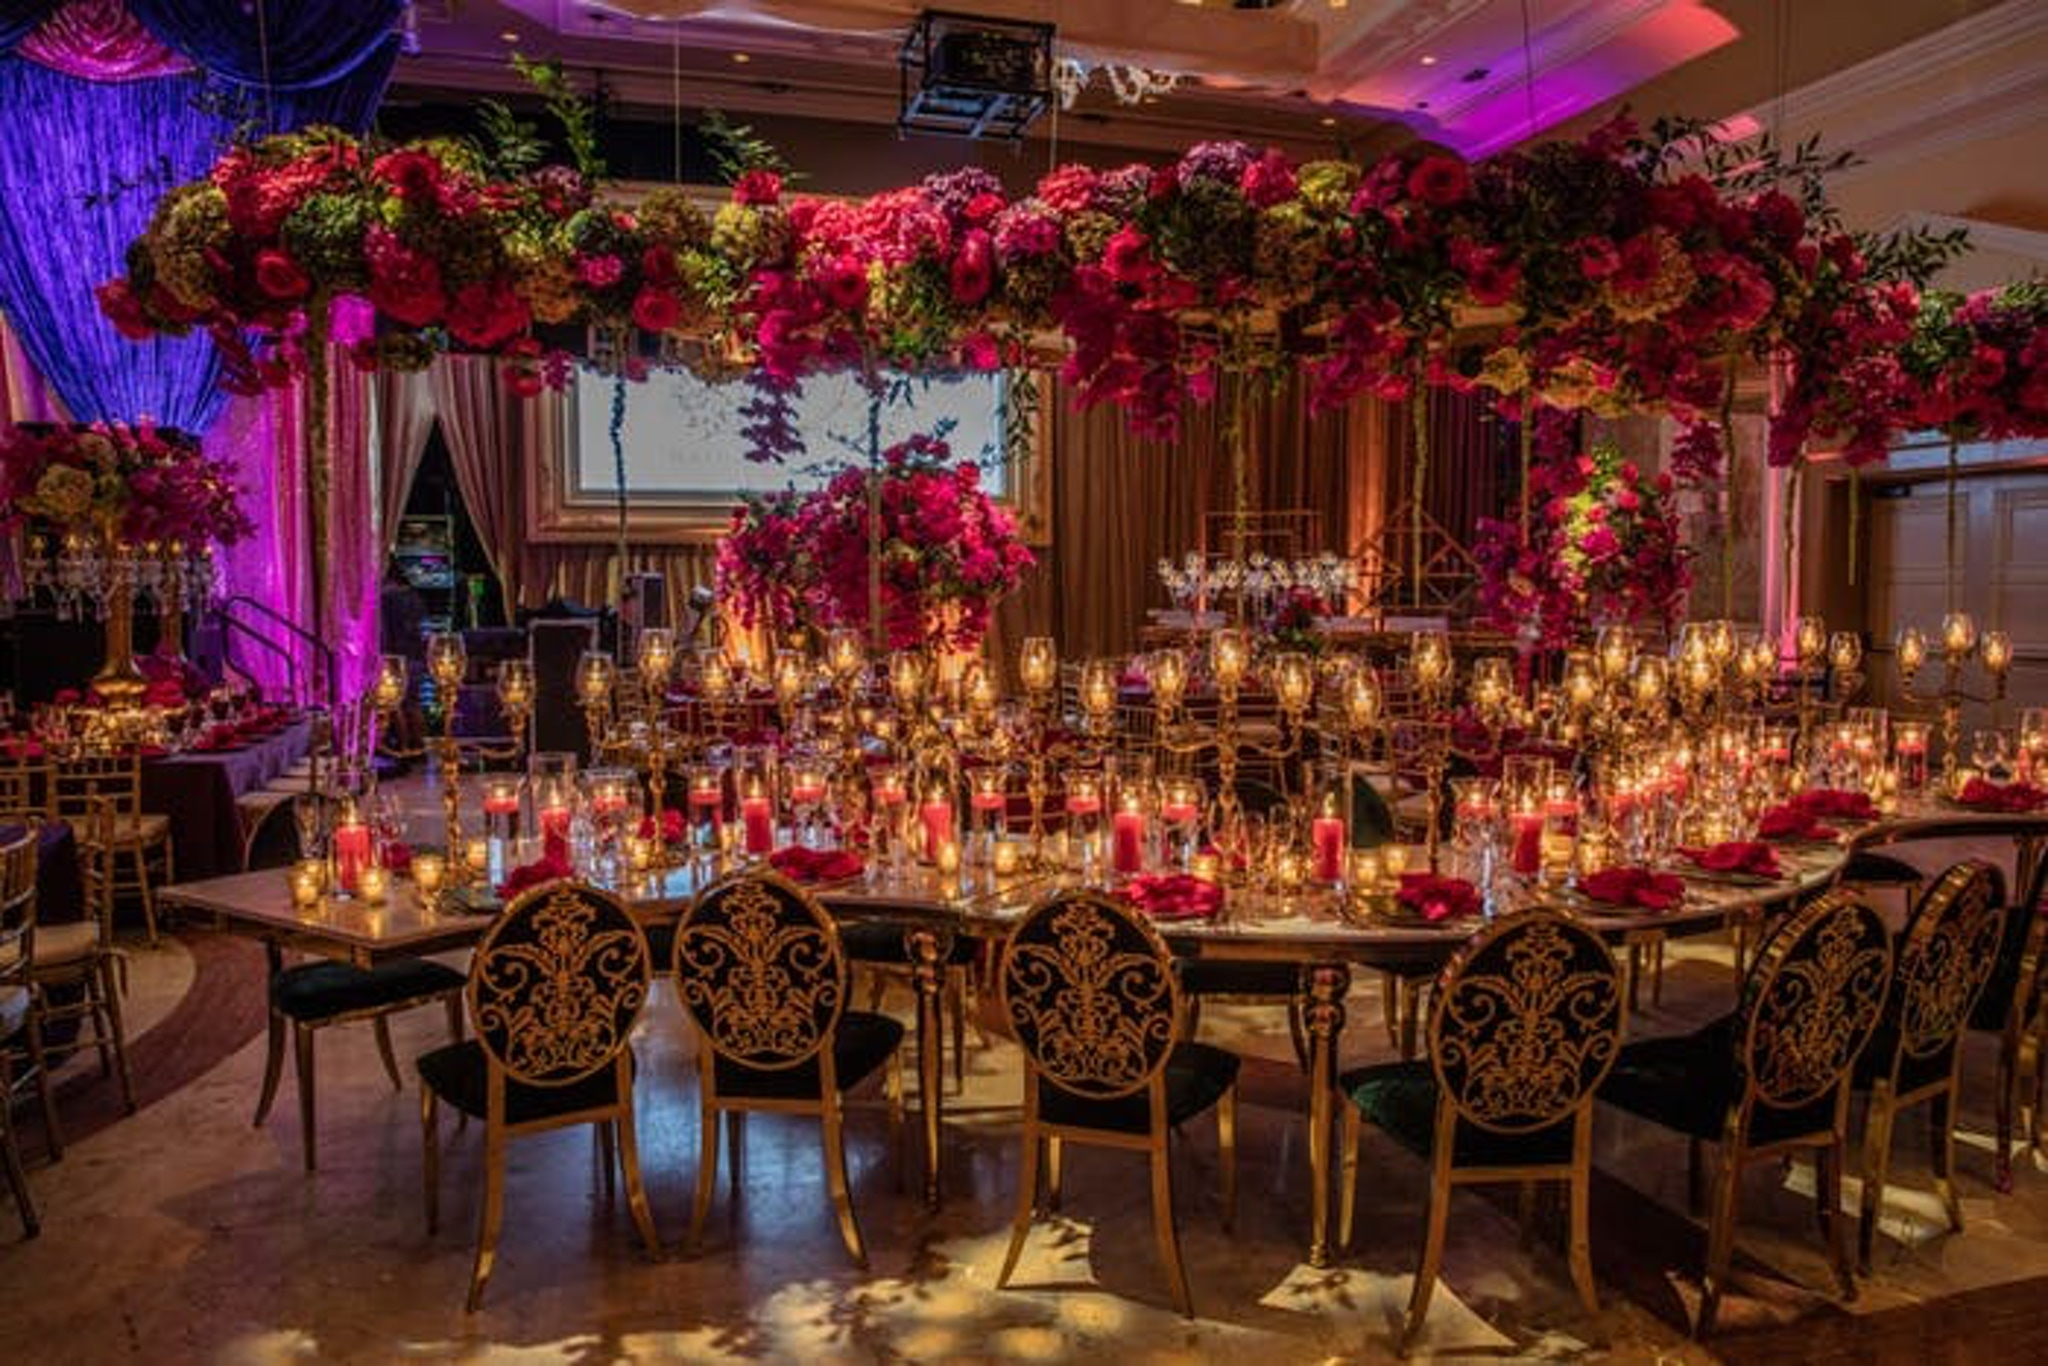 Winding wedding table with candles and colorful flowers